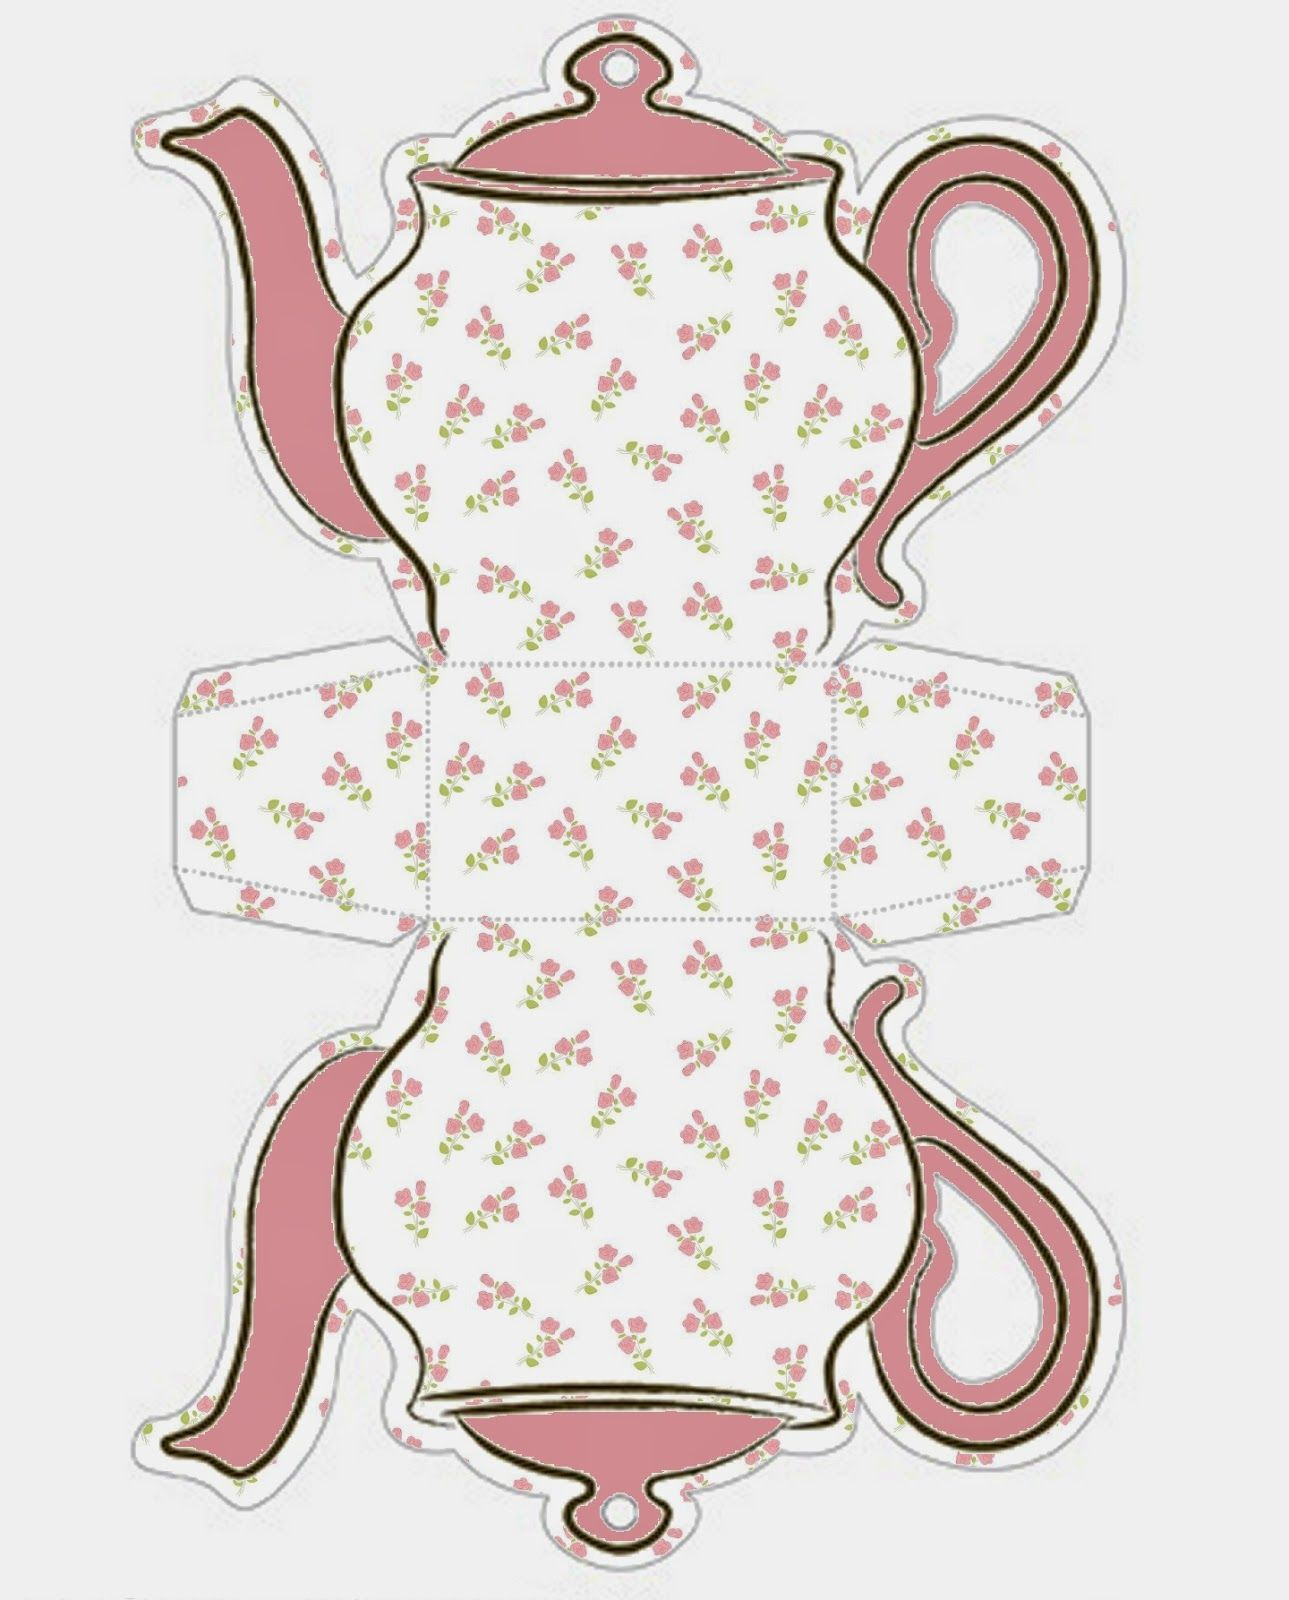 photograph relating to Gift Box Templates Free Printable named Totally free Printable Teapot Reward Box Templates I appreciate Free of charge